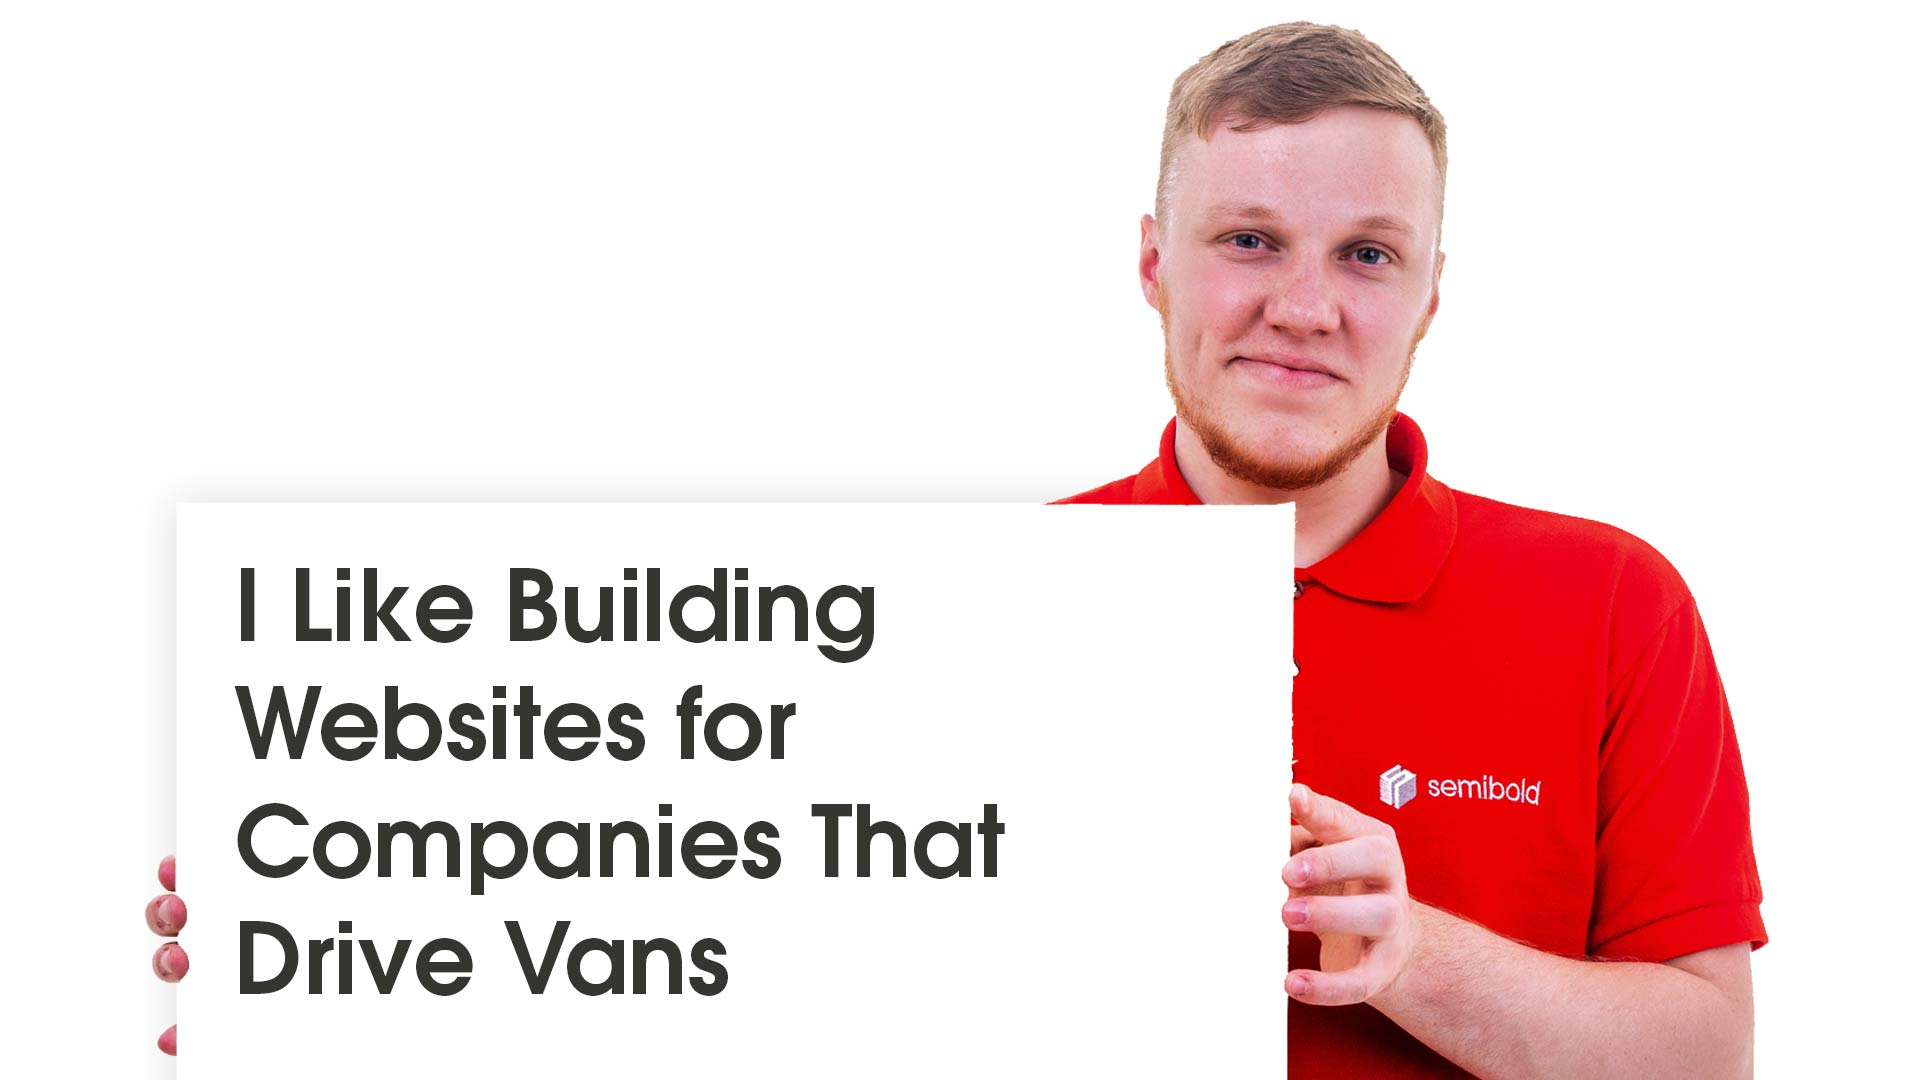 I Like Building Websites for Companies That Drive Vans 6